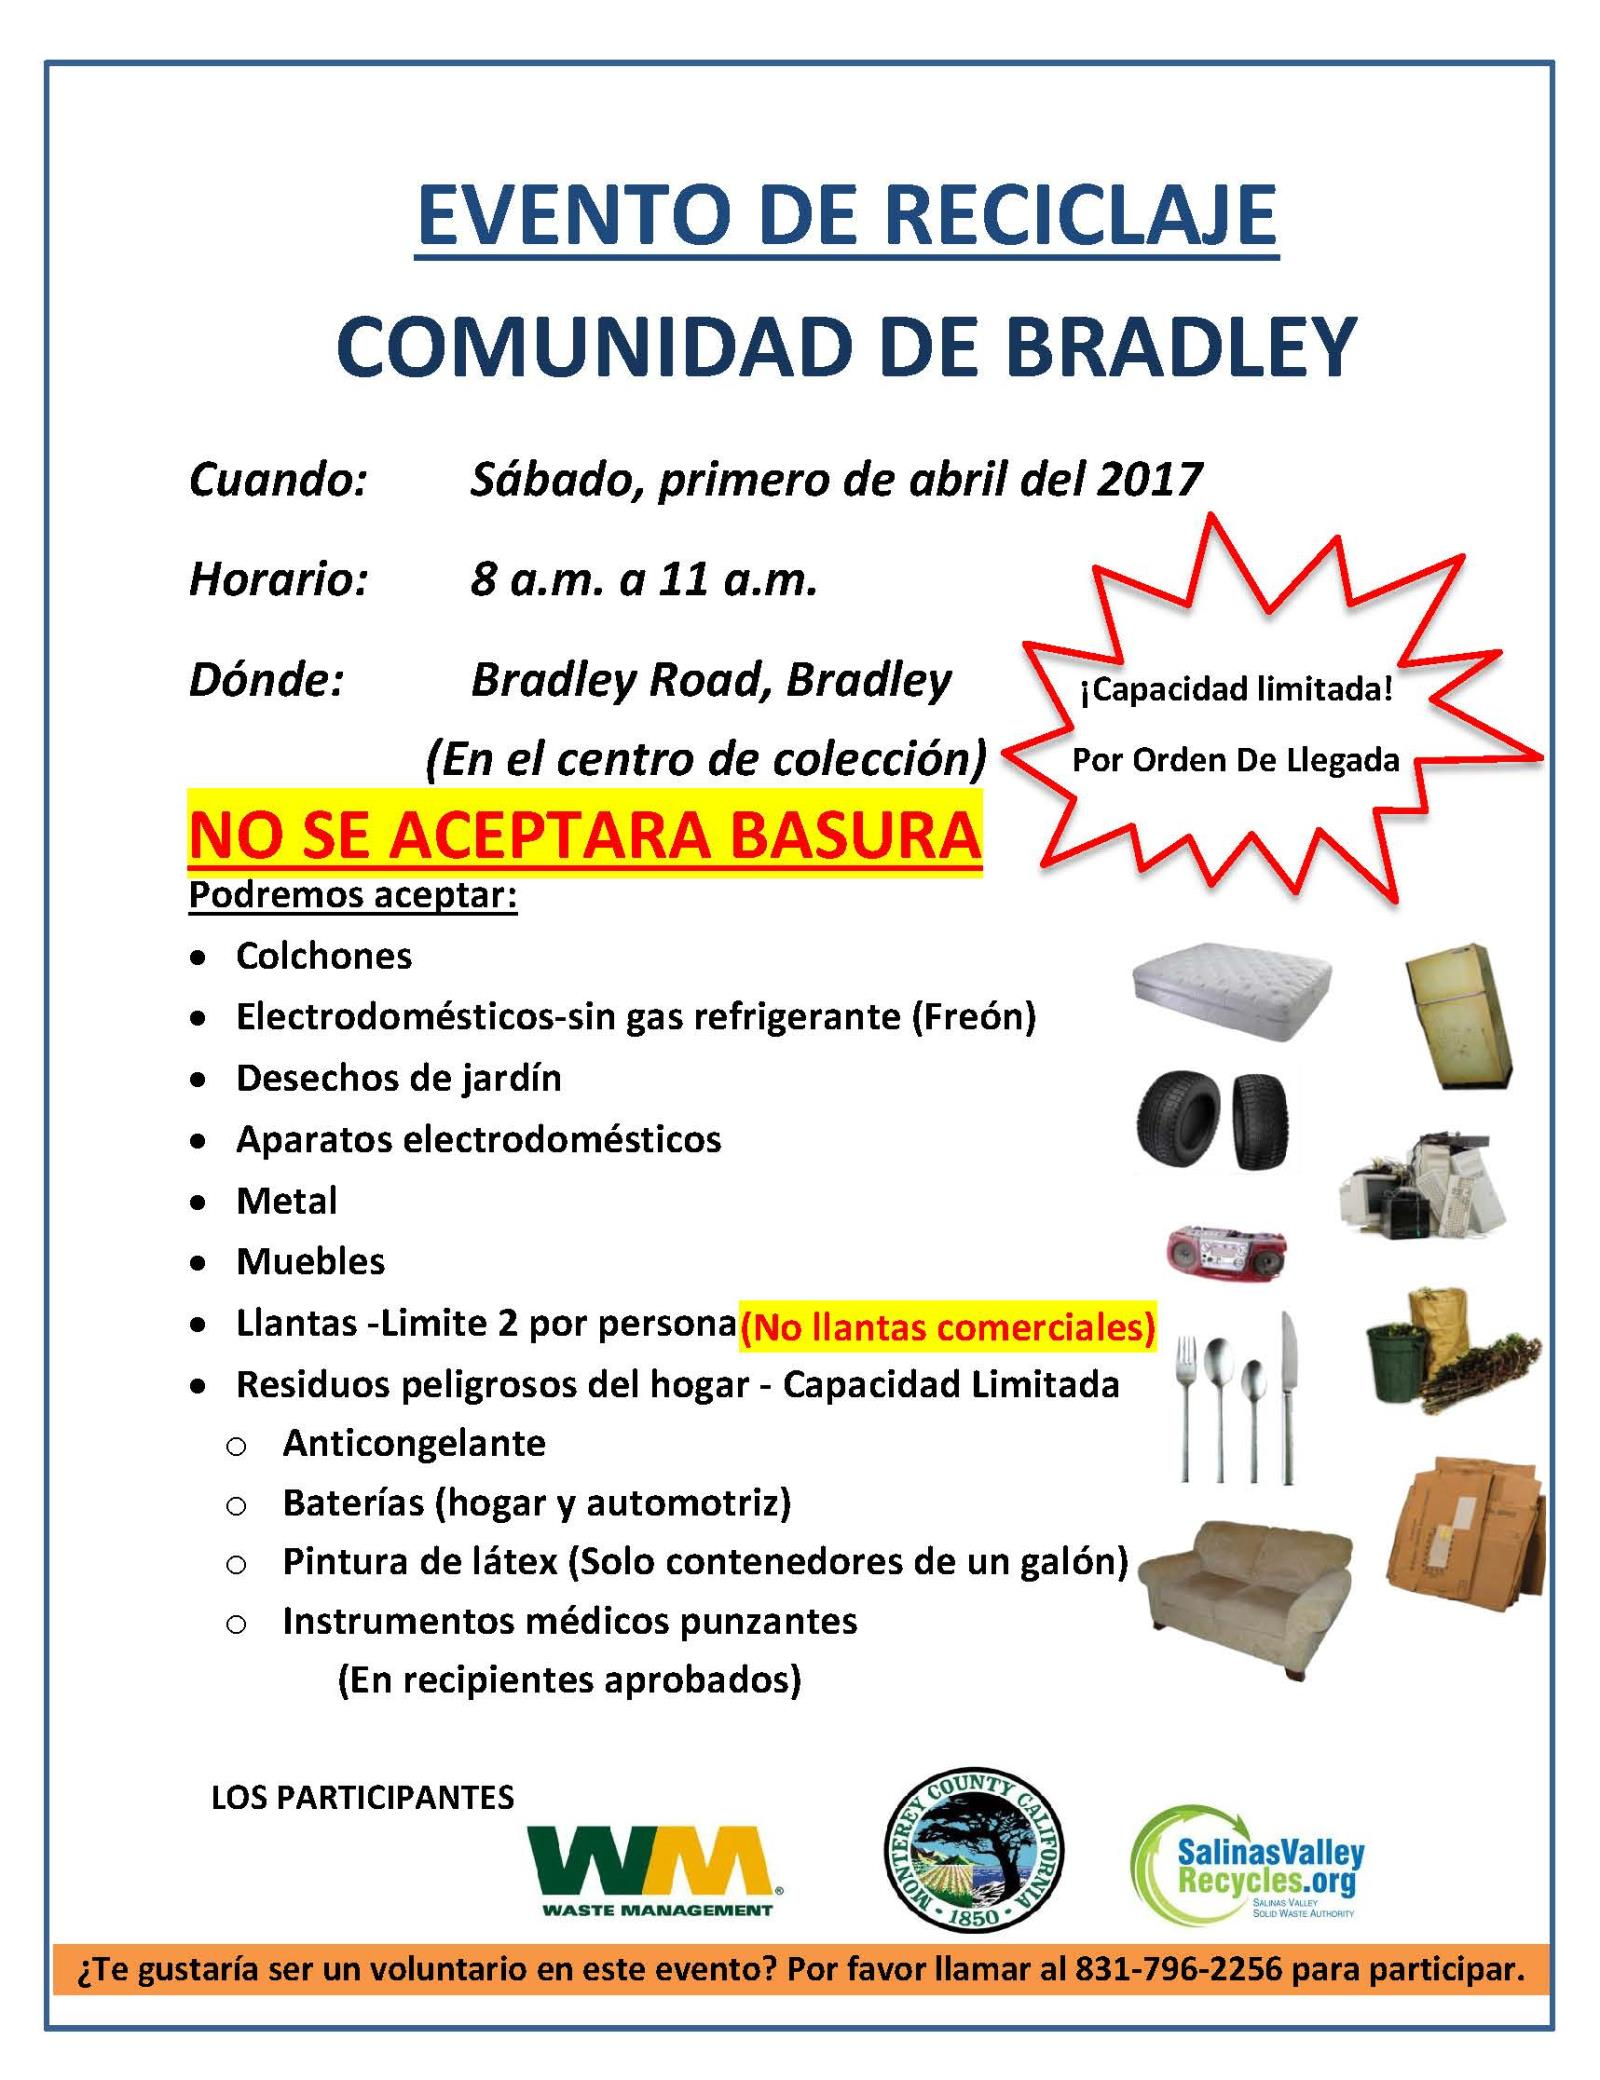 Bradley Community Recycle Event Flyer 4-1-2017 - Copy_Page_2